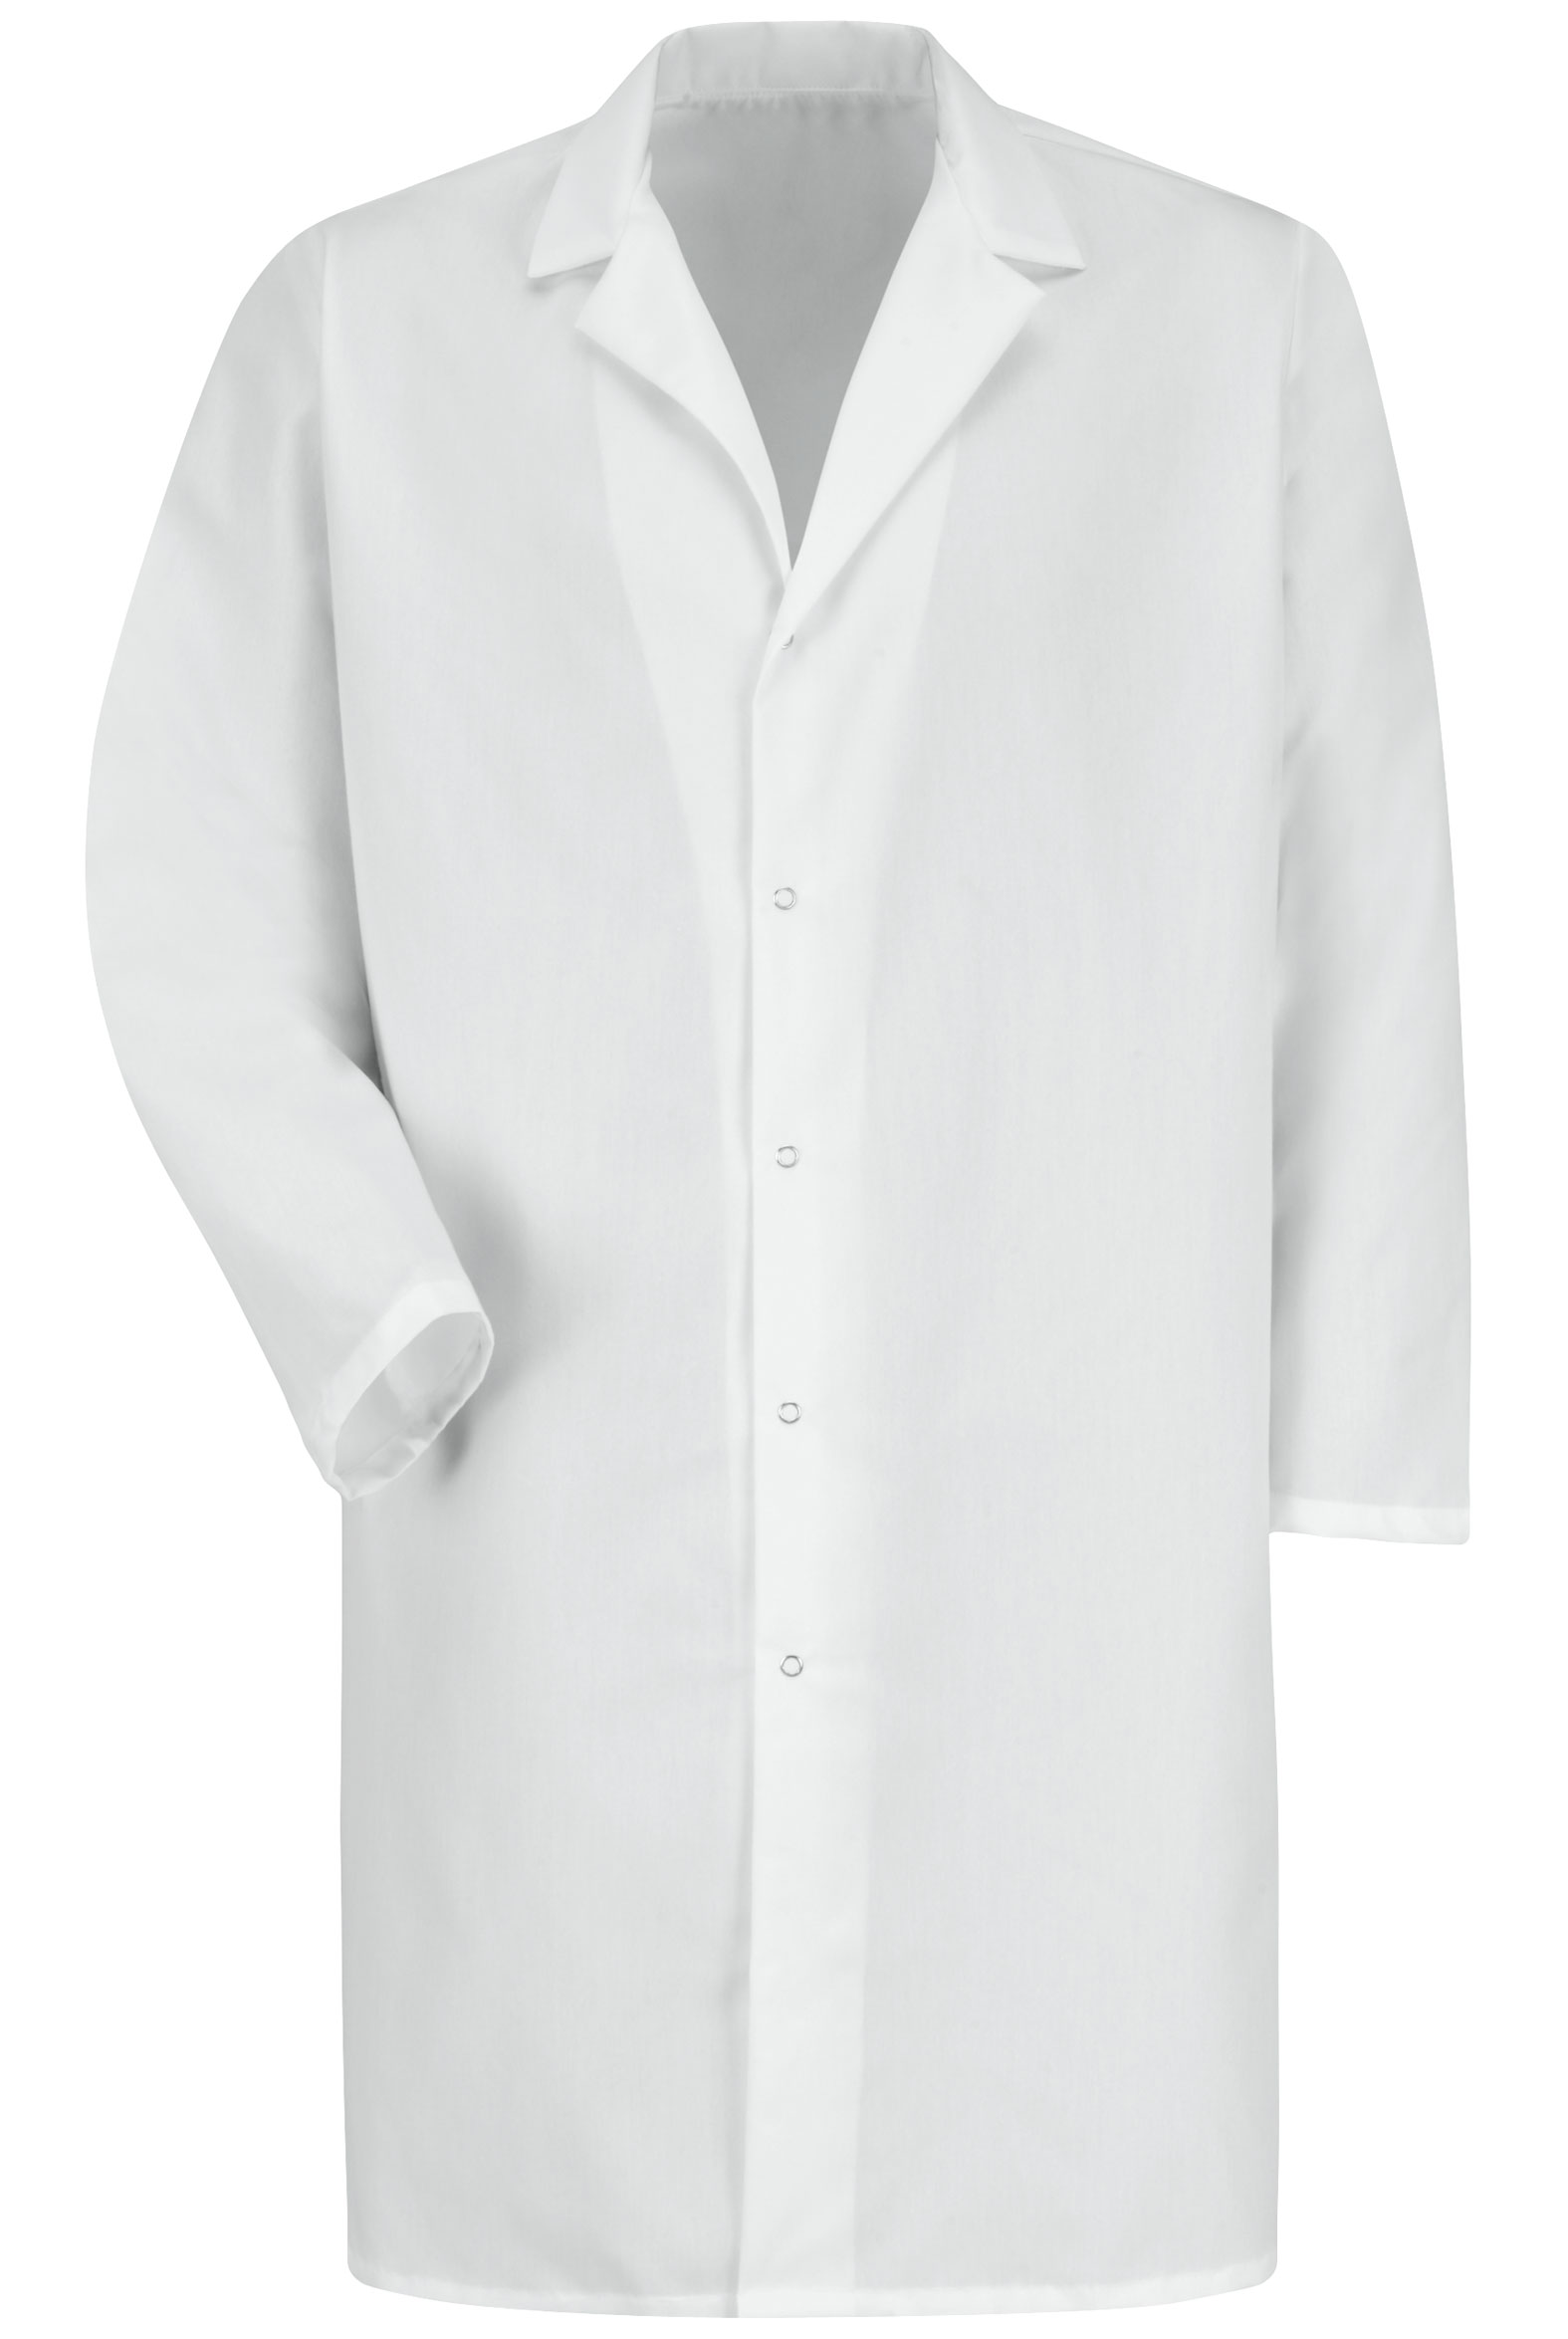 Specialized Adult Gripper Lab Coat by Red Kap